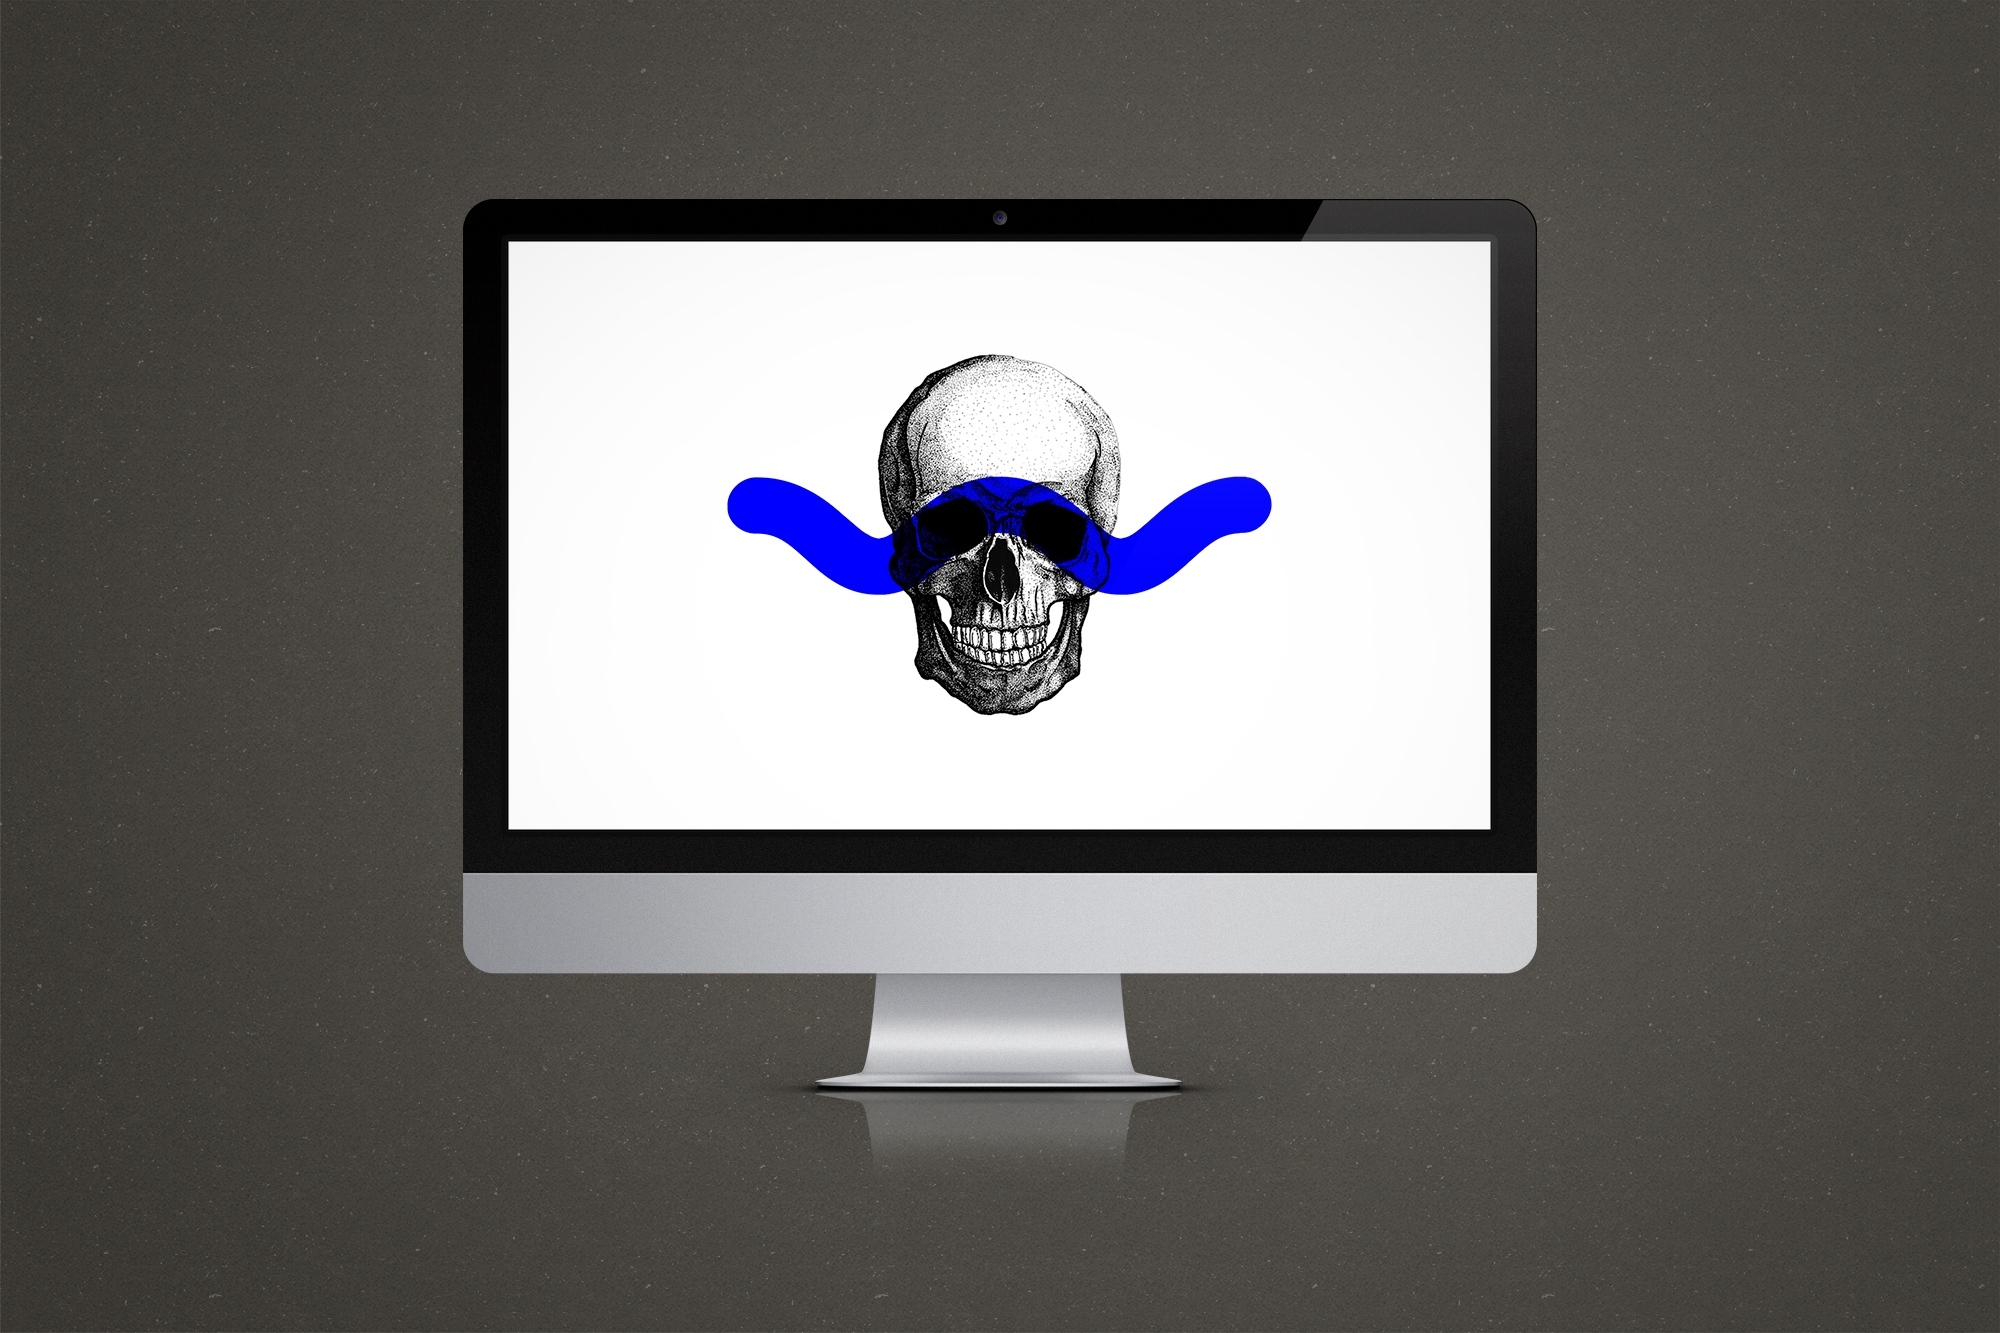 Skull's Head Illustration desktop HD wallpaper with blue mark